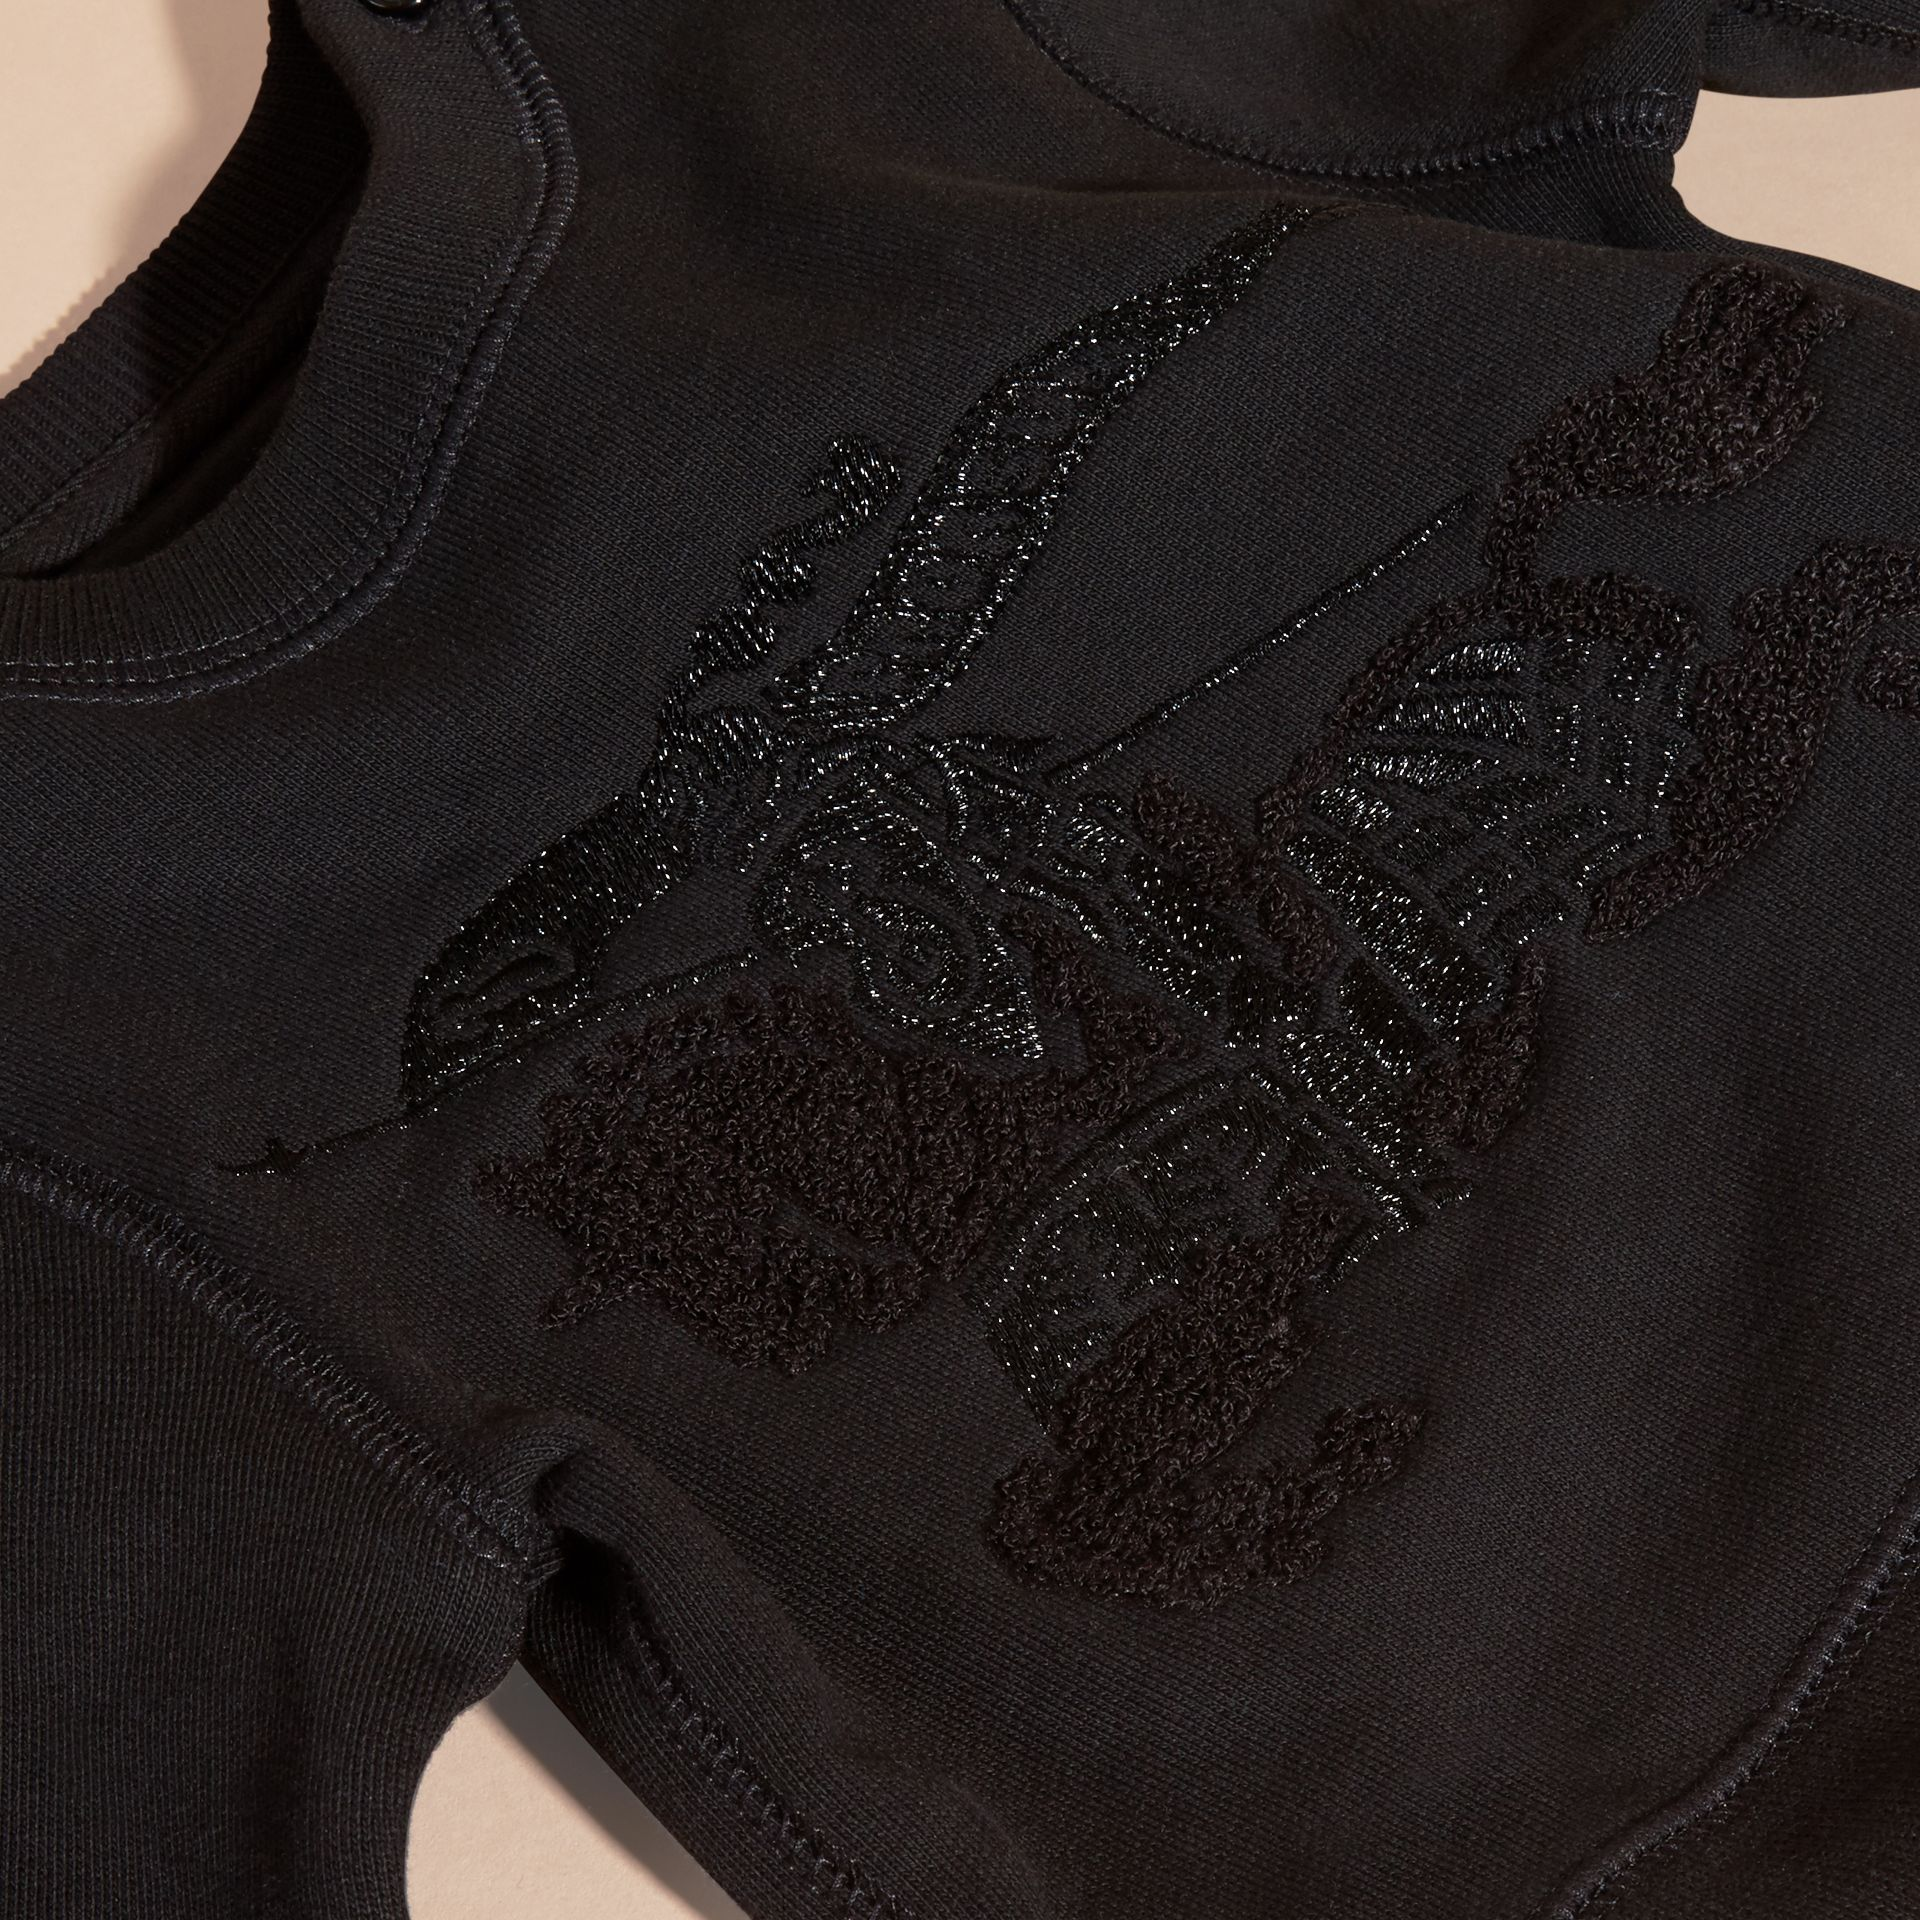 Black Equestrian Knight Detail Cotton Sweatshirt - gallery image 2